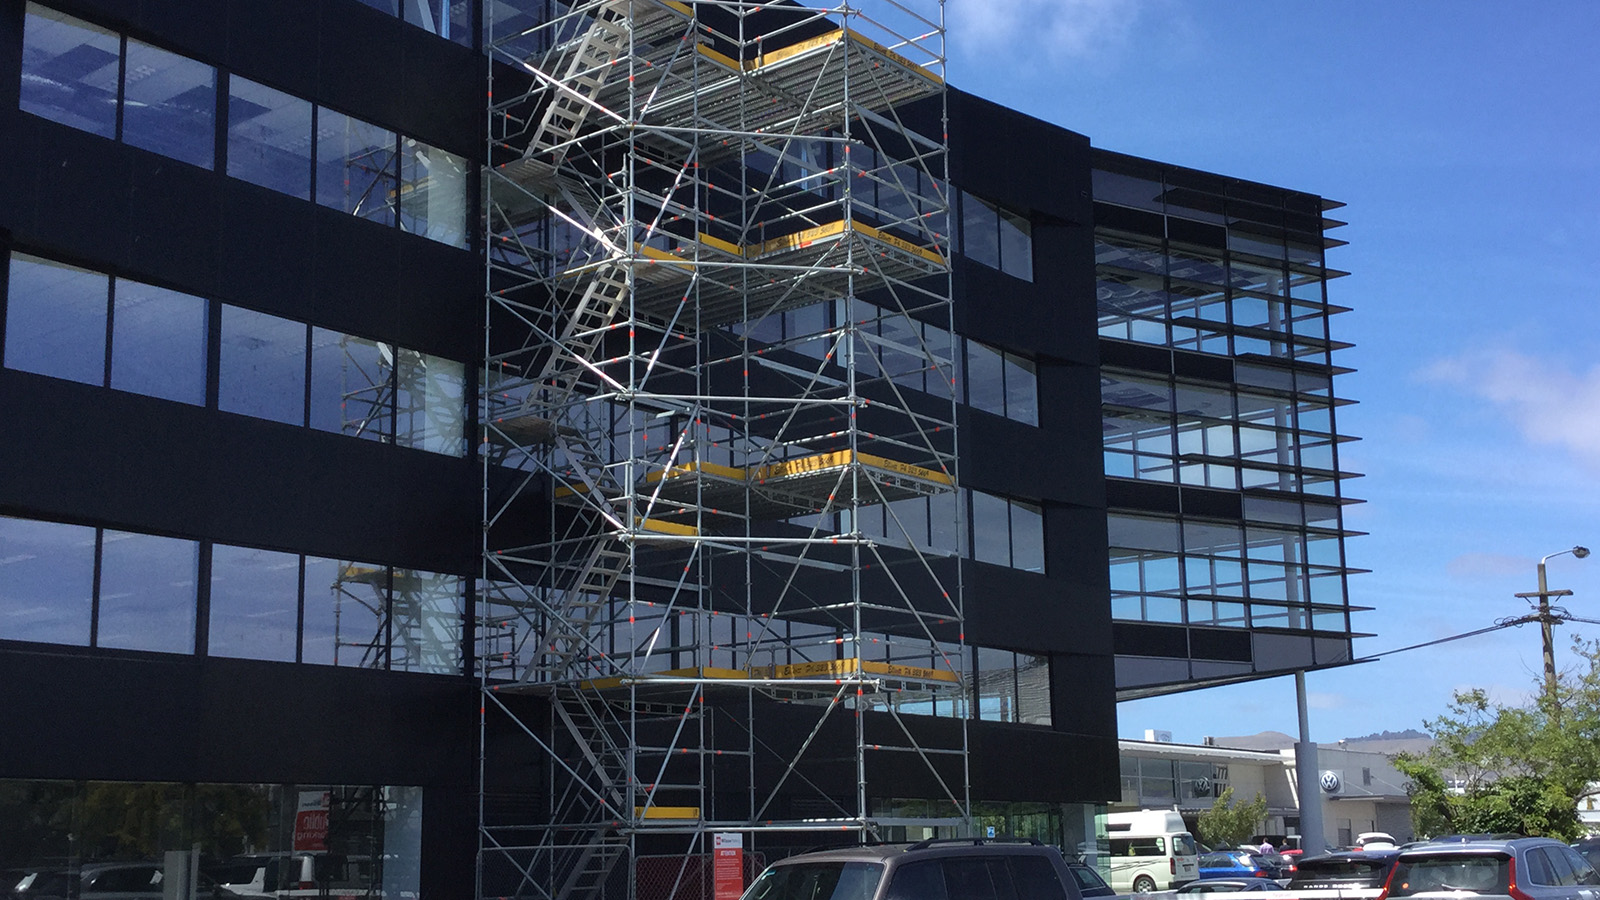 Elliott Scaffolding were commissioned by Fletcher Construction to meet the challenges presented to them in this corporate office fit-out in central city Christchurch.